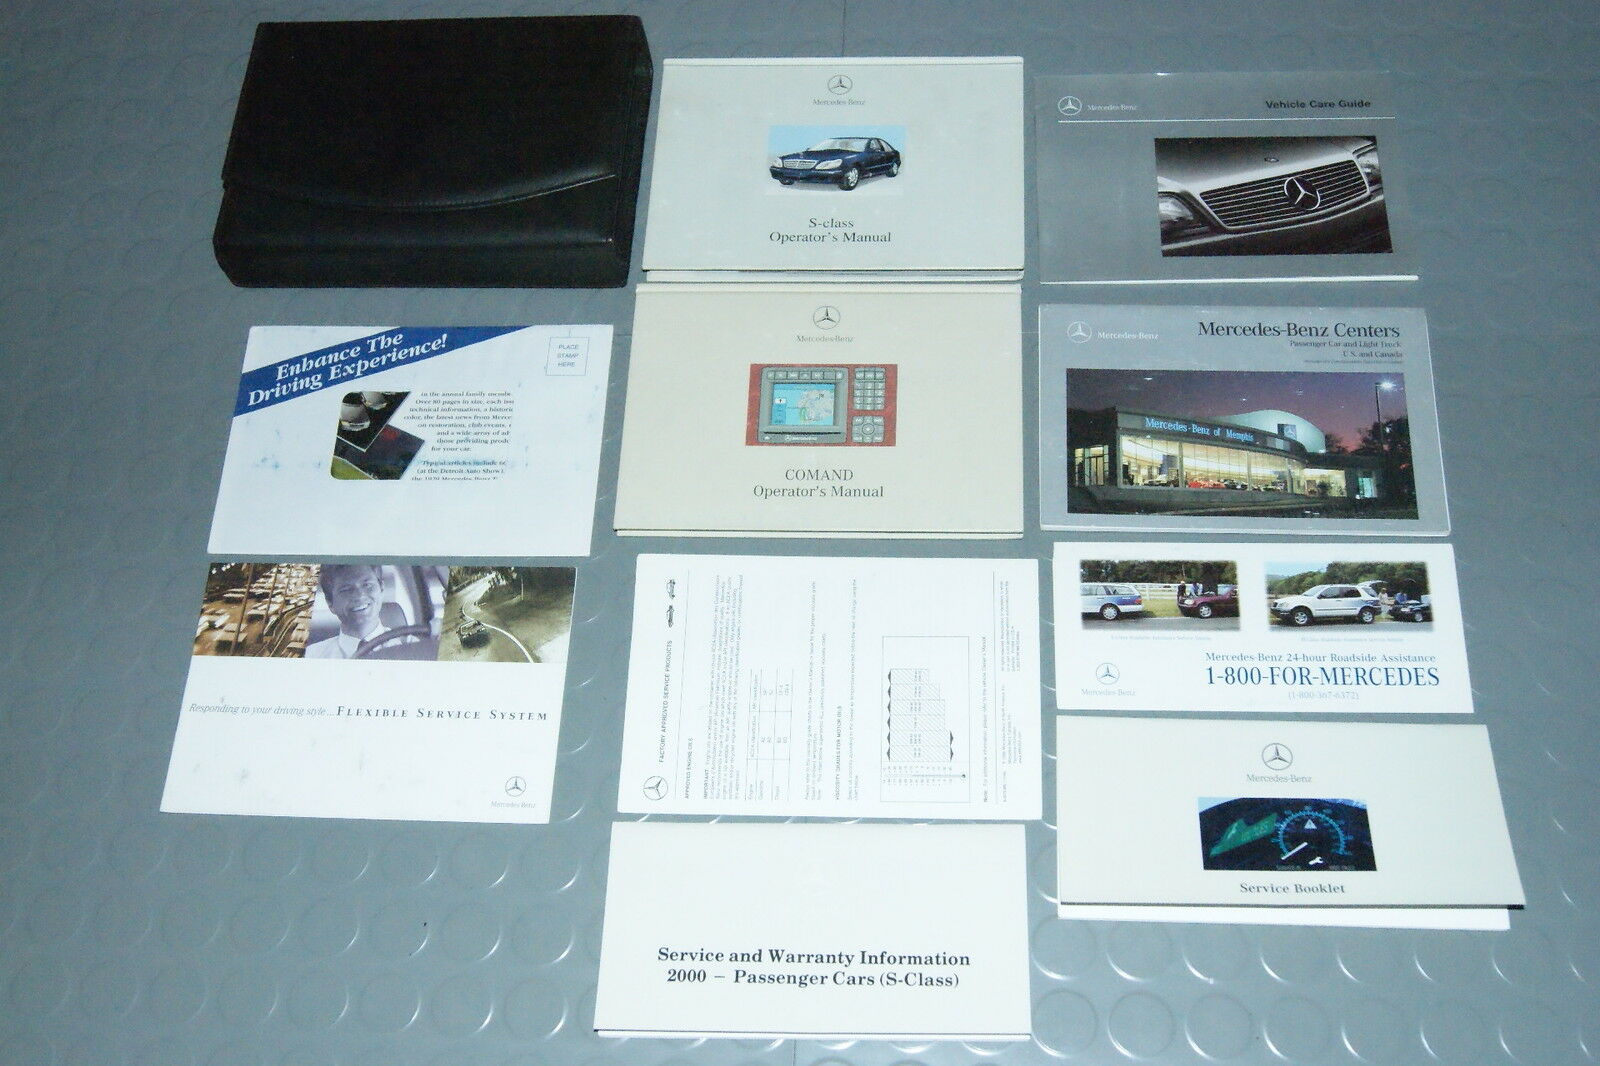 2000 Mercedes Benz S430 S500 S 430 500 Owners Manual - SET w/Nav Manual 1  of 1Only 5 available ...